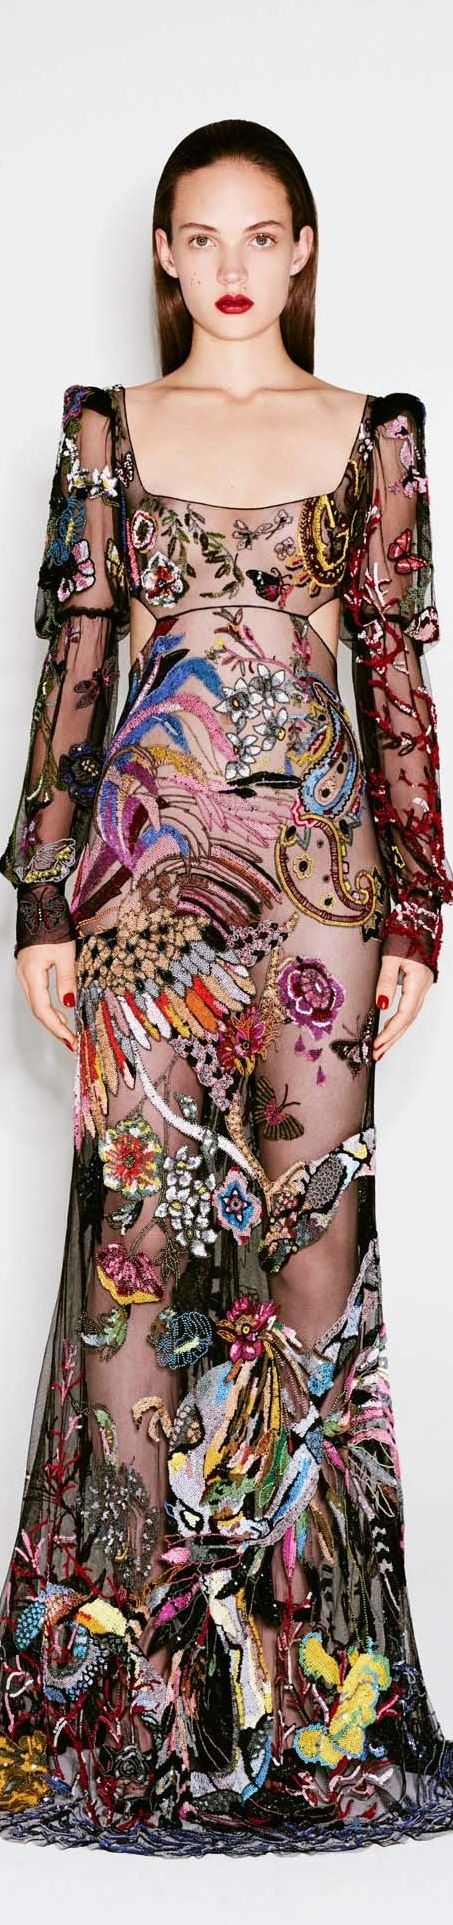 http://www.newtrendsclothing.com/category/dresses/ Alexander McQueen Pre Fall 2016                                                                                                                                                      More